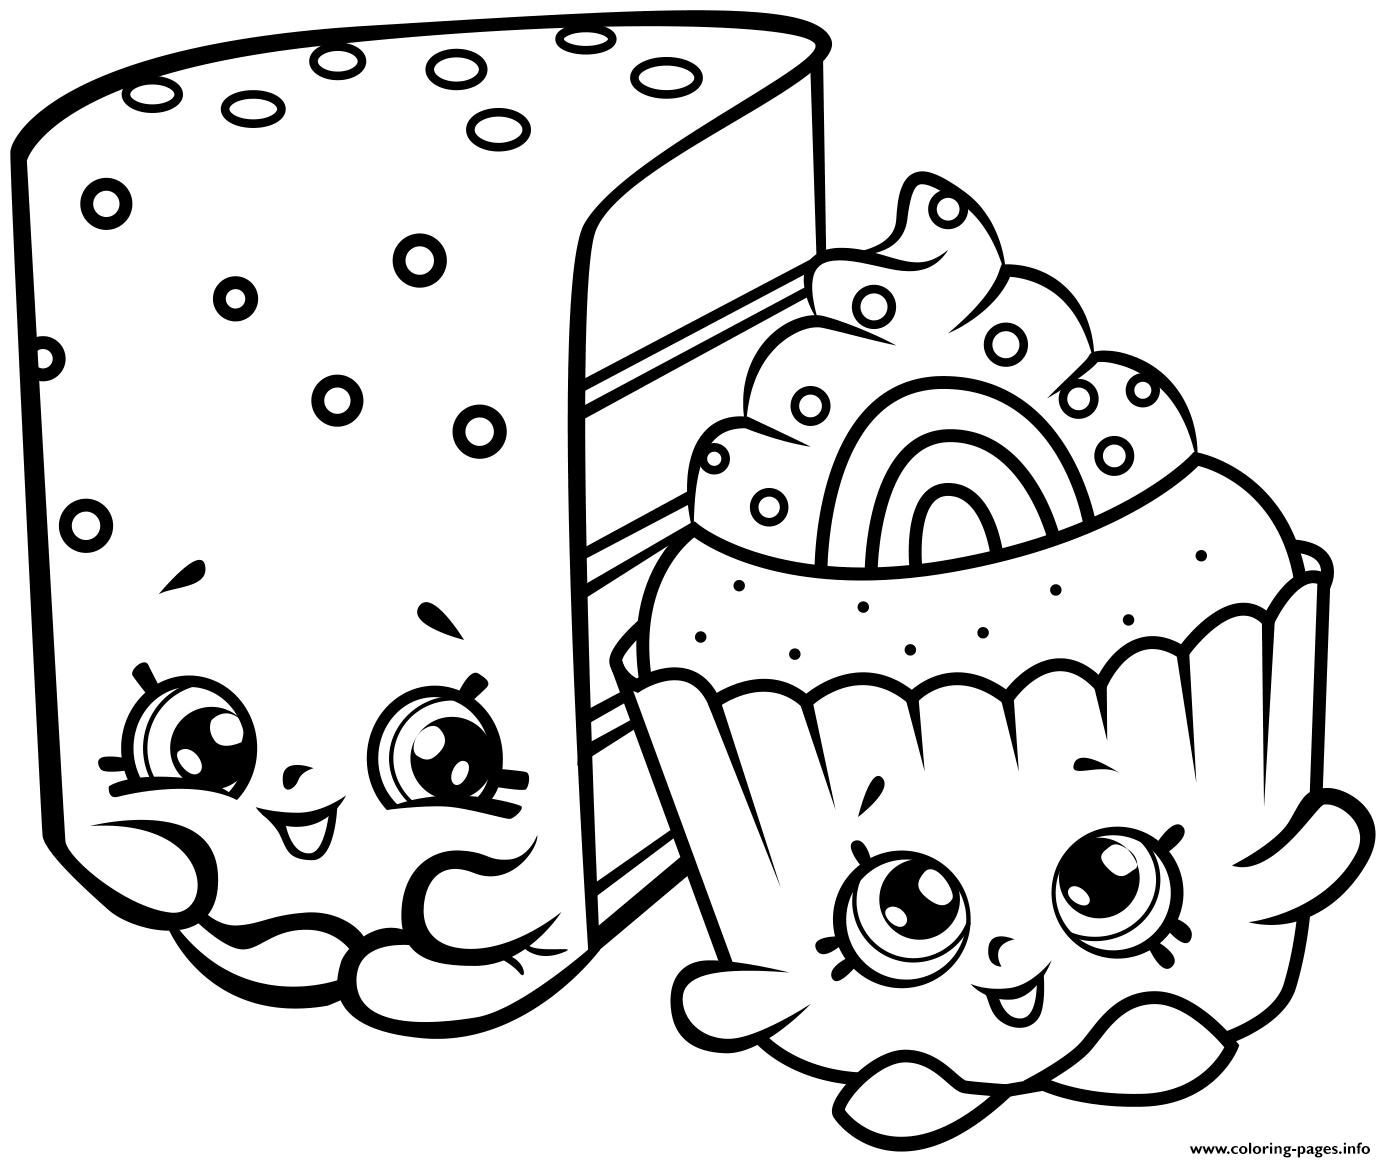 Shopkins coloring pages to print out - Shopkins Coloring Pages To Print Out 18